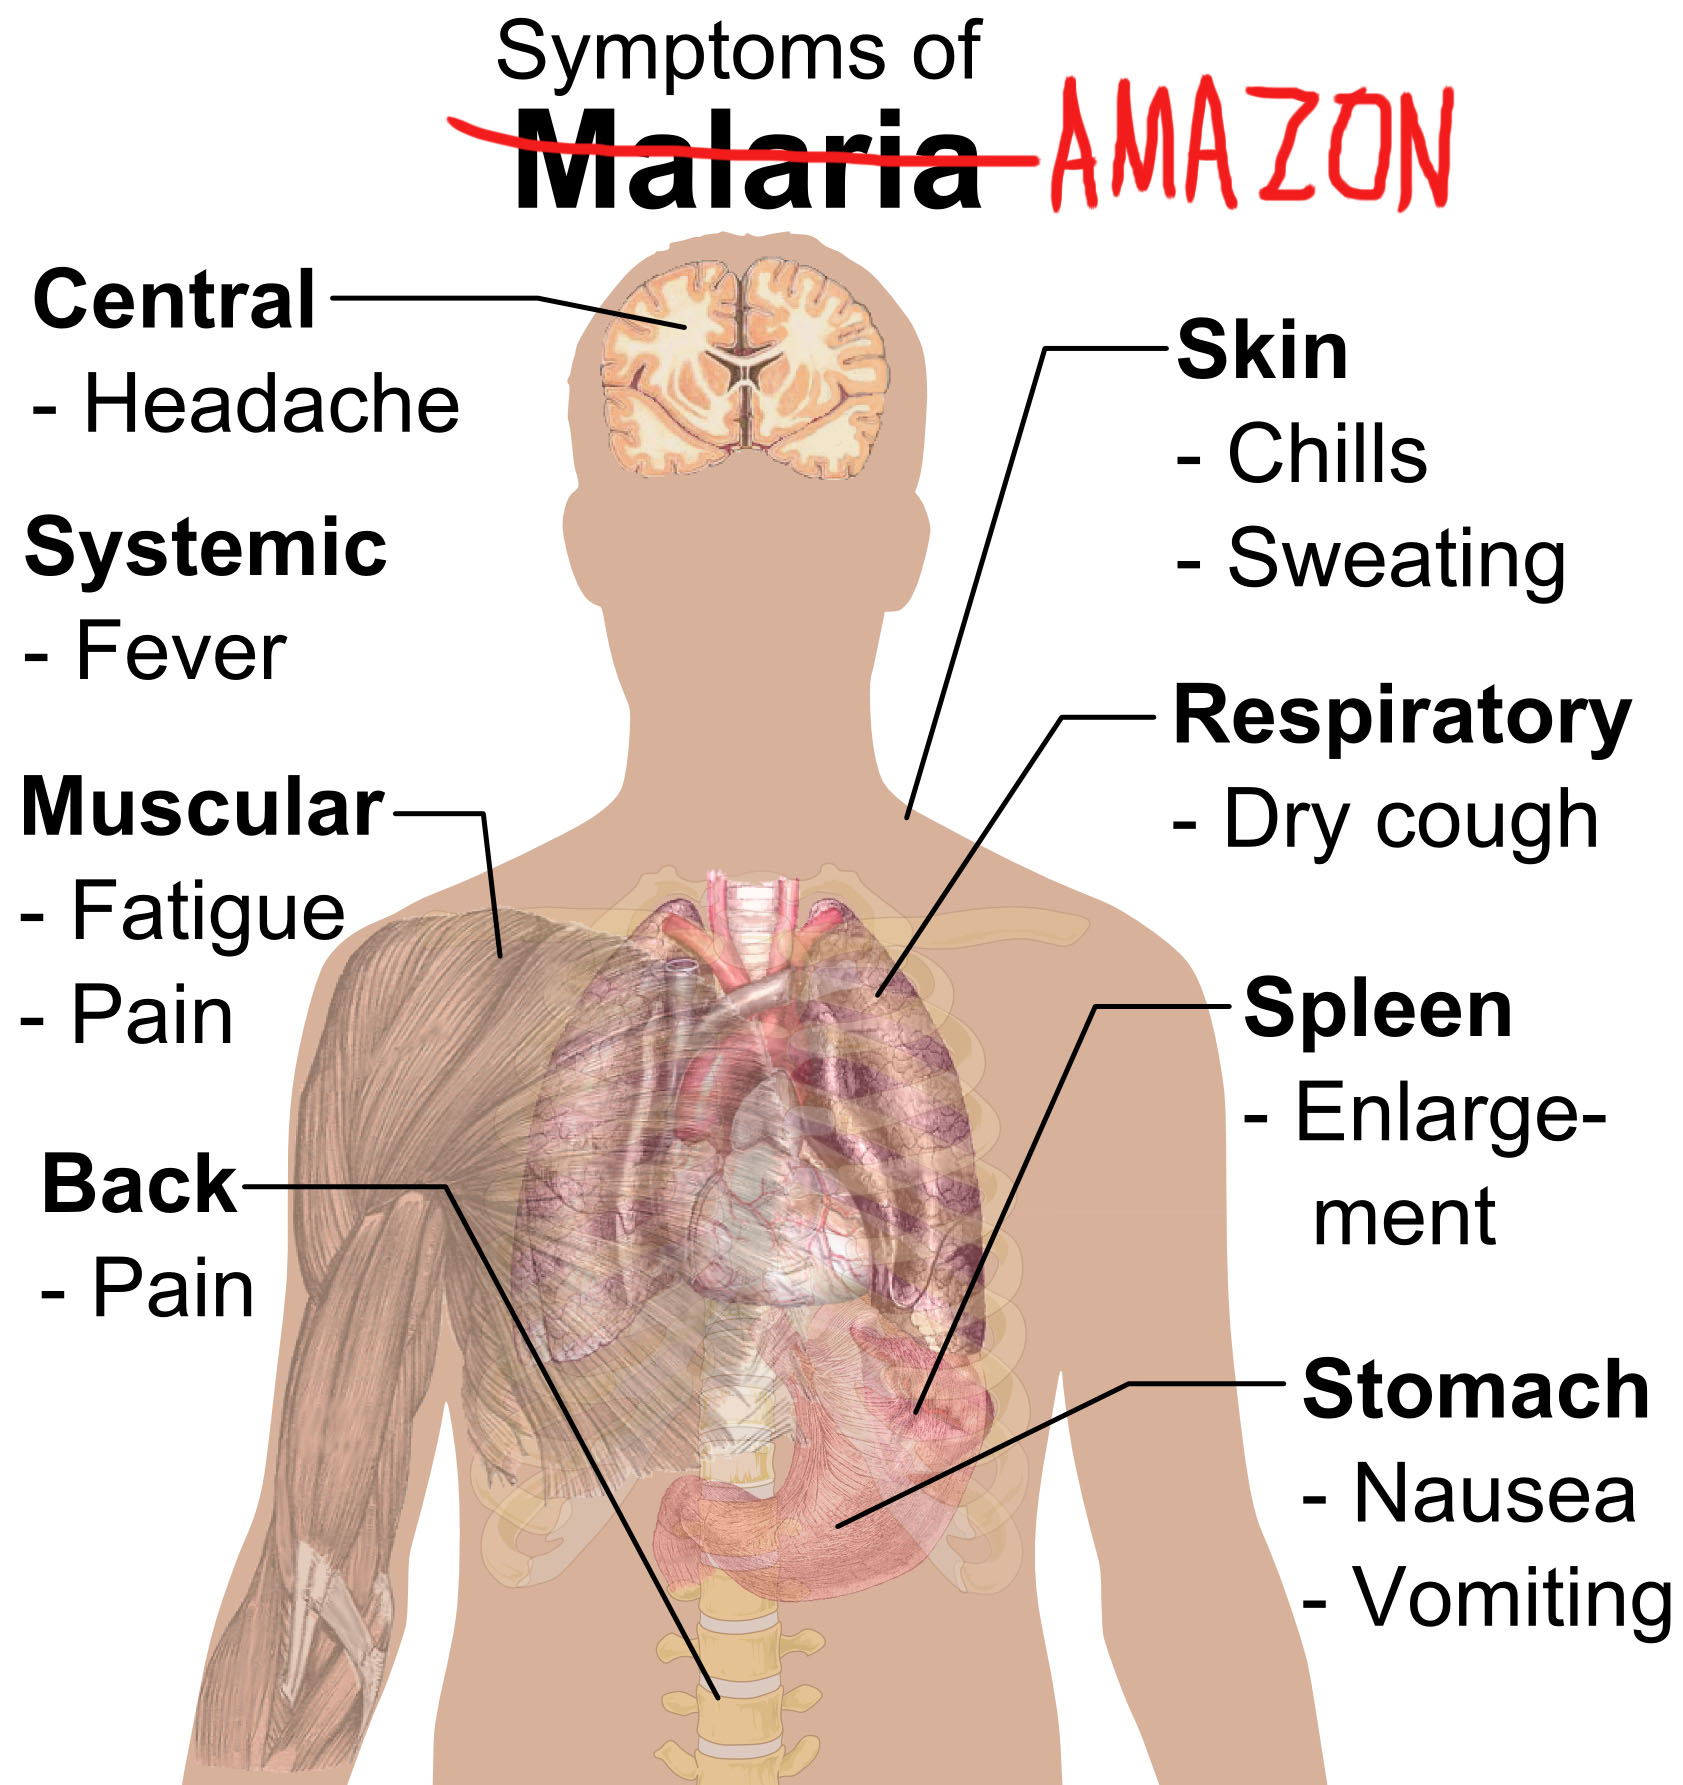 David Mitchell (not that one, the other one) eloquently compares Amazon to malaria, pimps